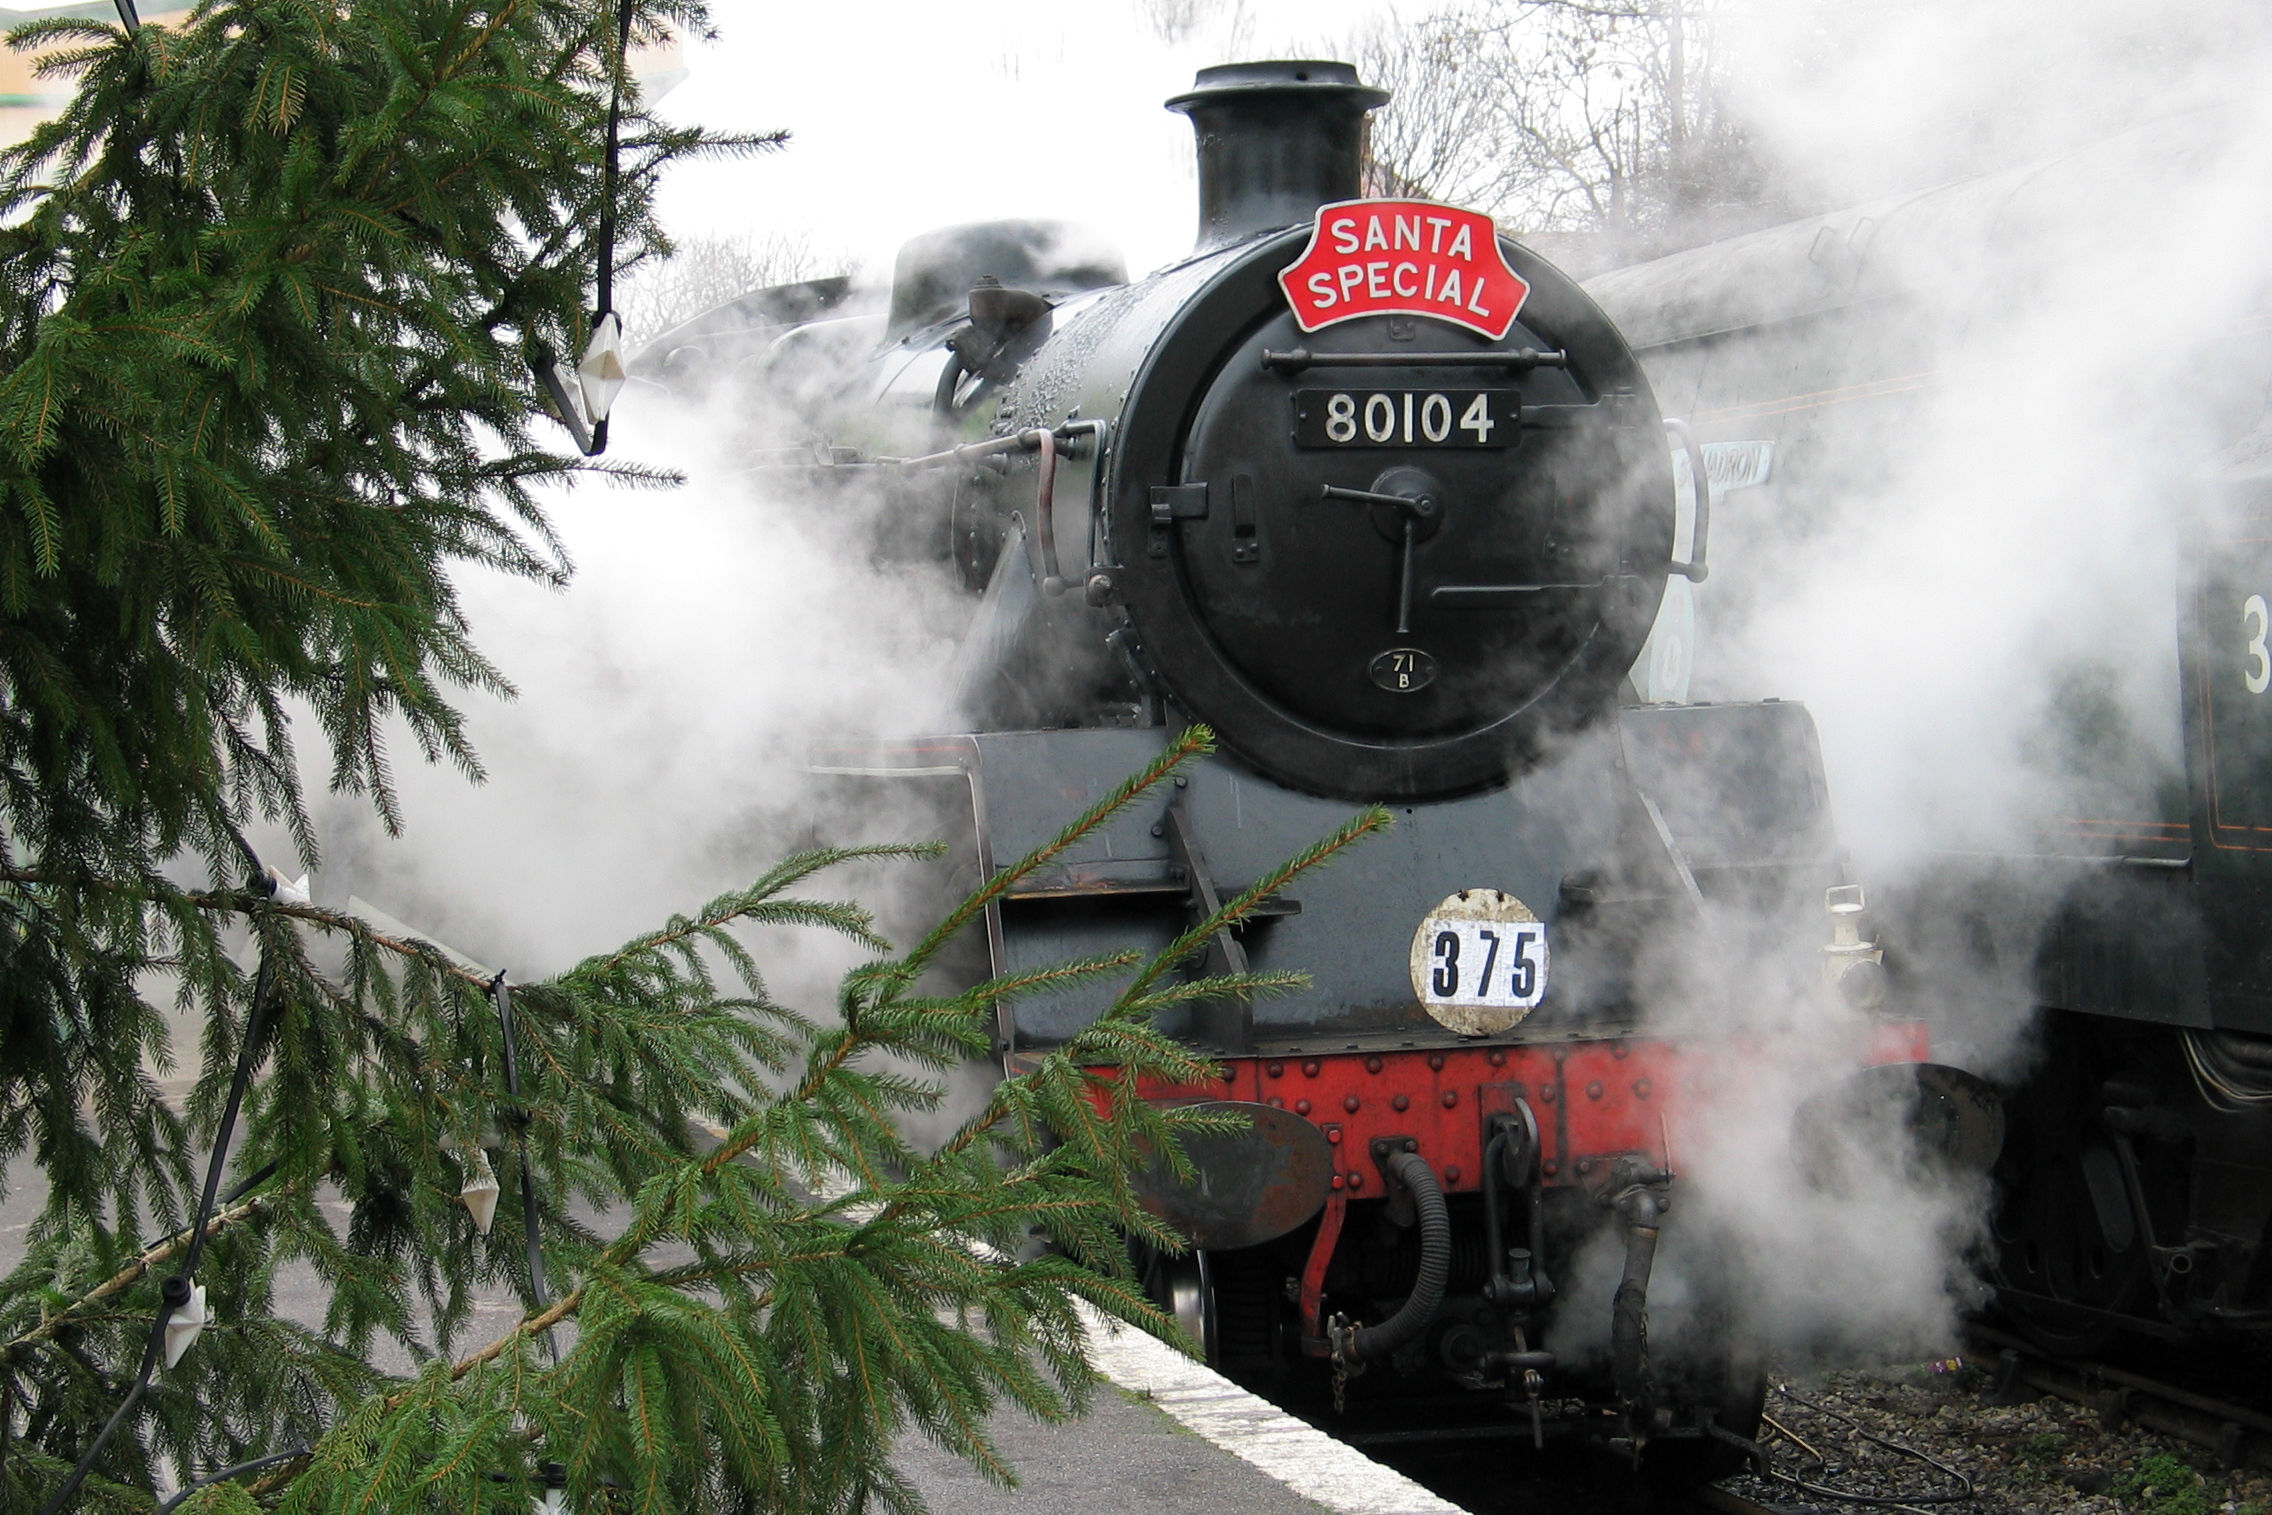 This Magical Christmas Train Will Take You from Texas to Santa's Workshop